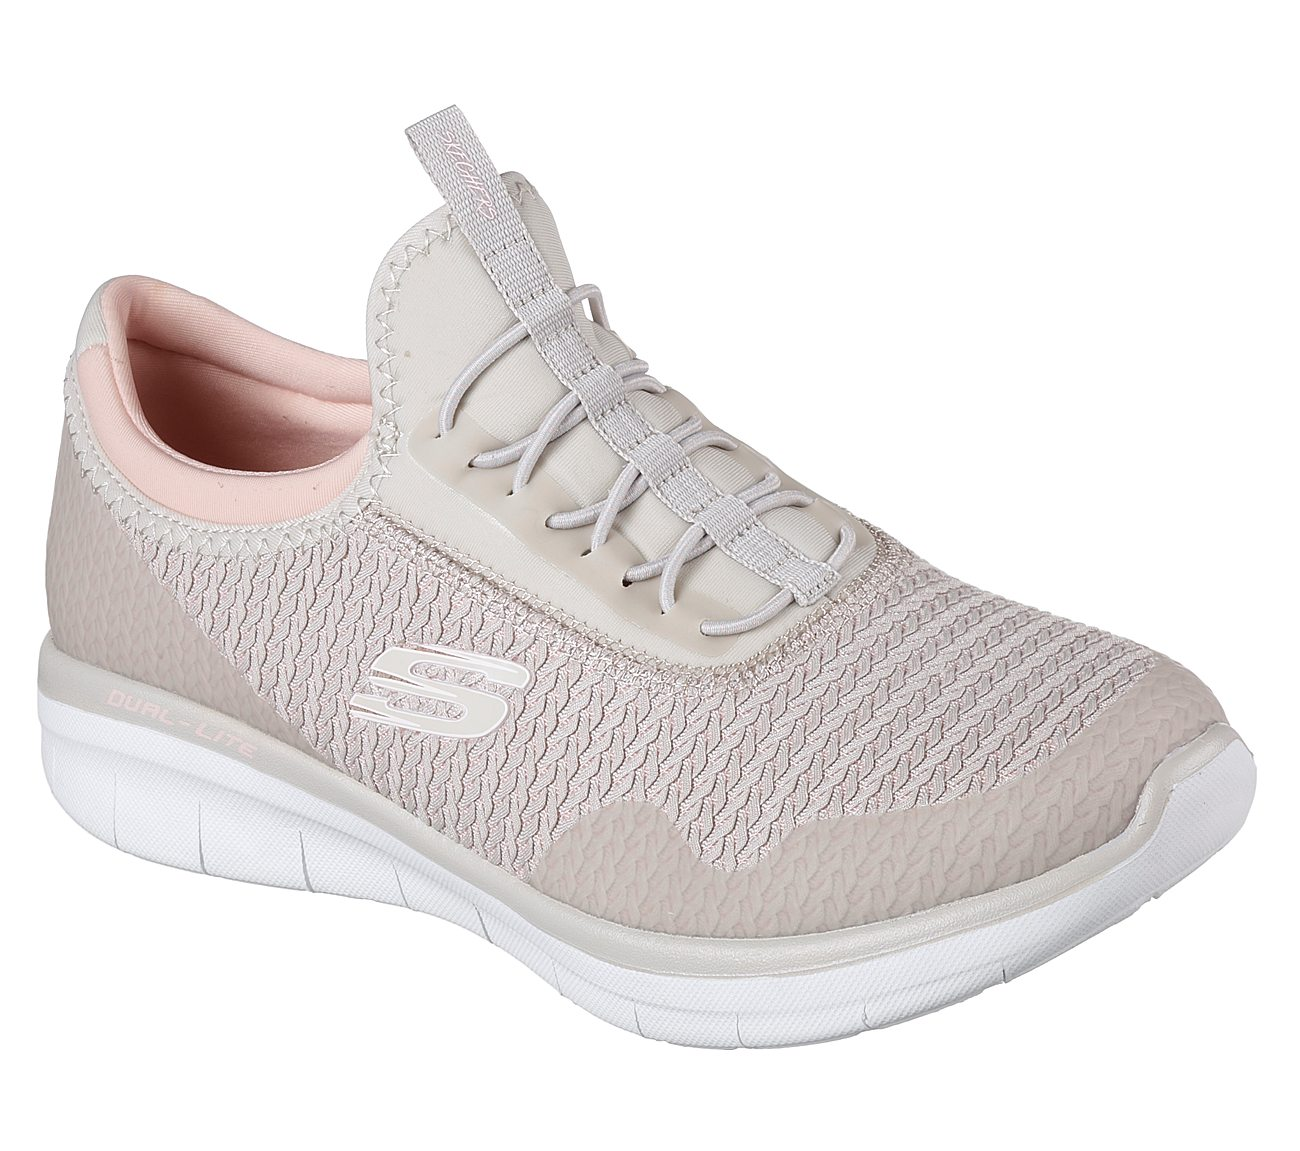 a8cc6e684164 Buy SKECHERS Synergy 2.0 - Mirror Image SKECHERS Sport Shoes only £59.00